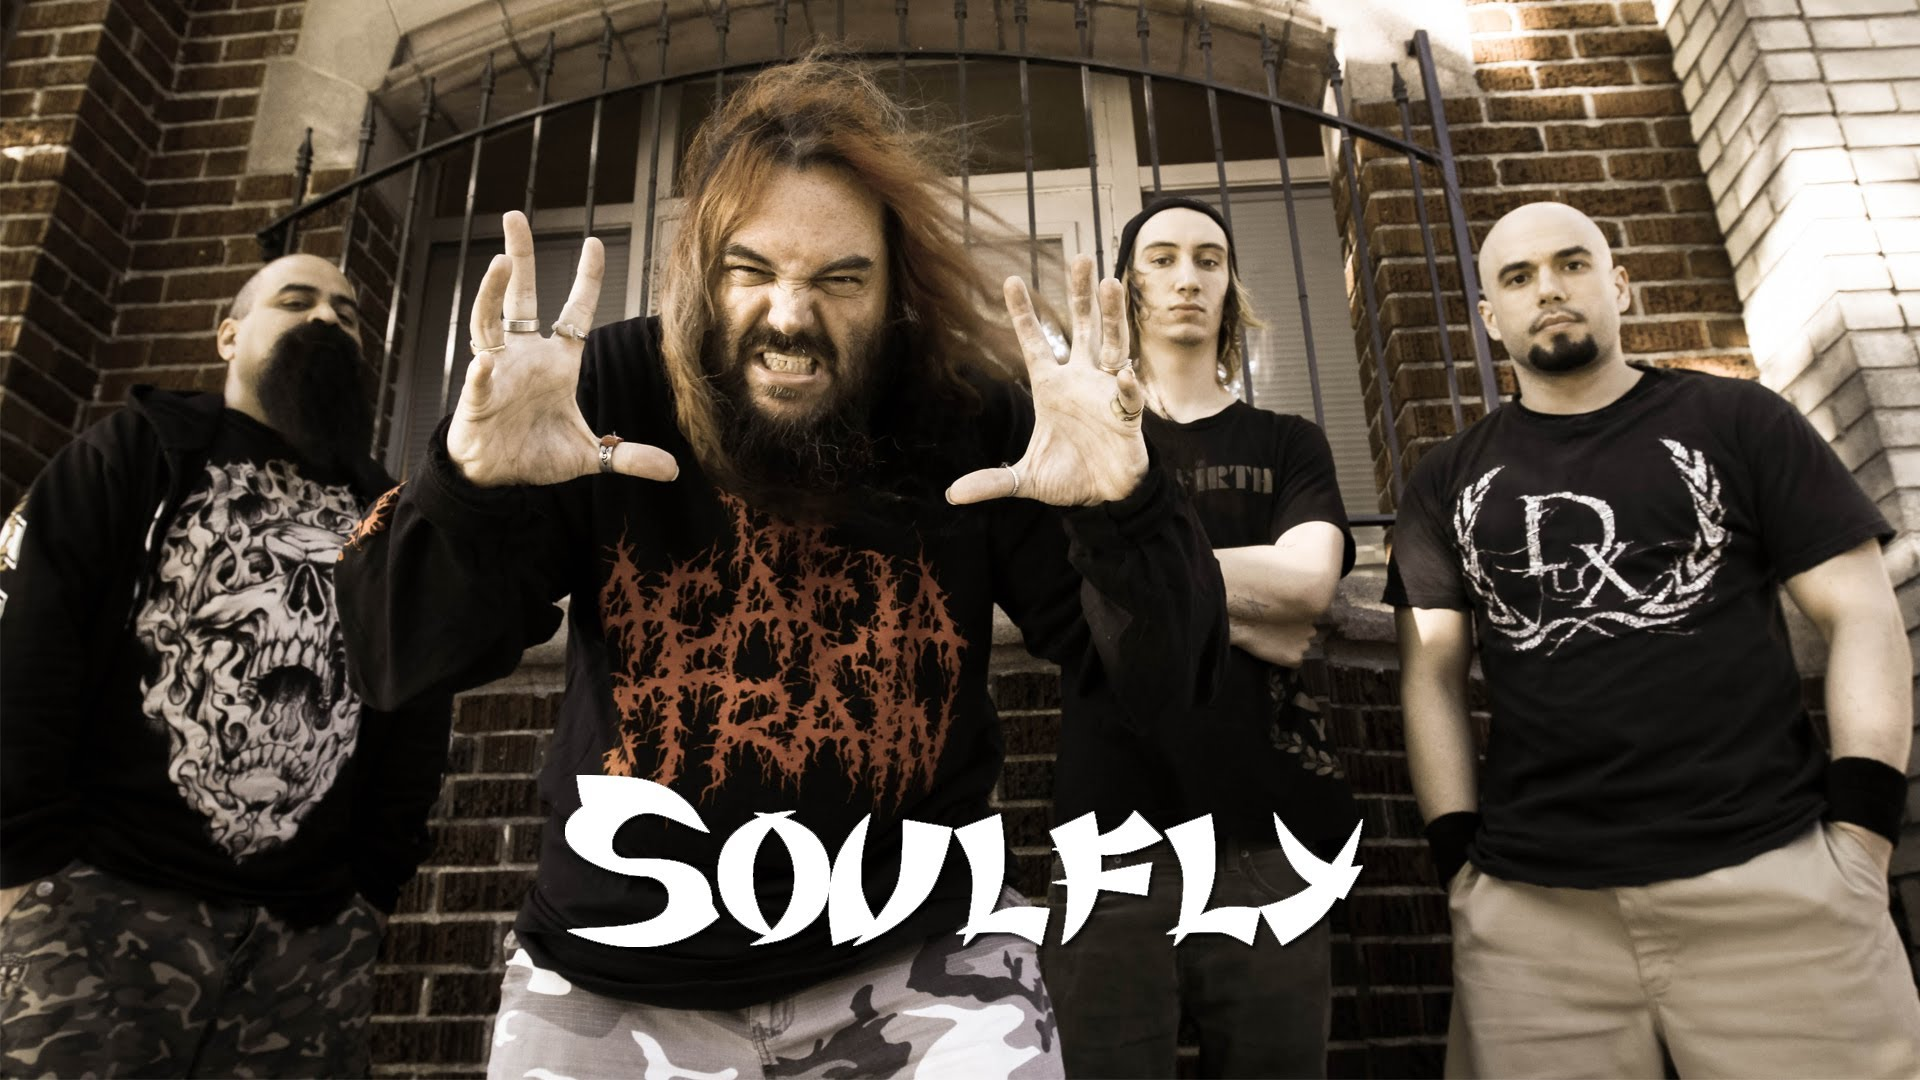 1920x1080 > Soulfly Wallpapers